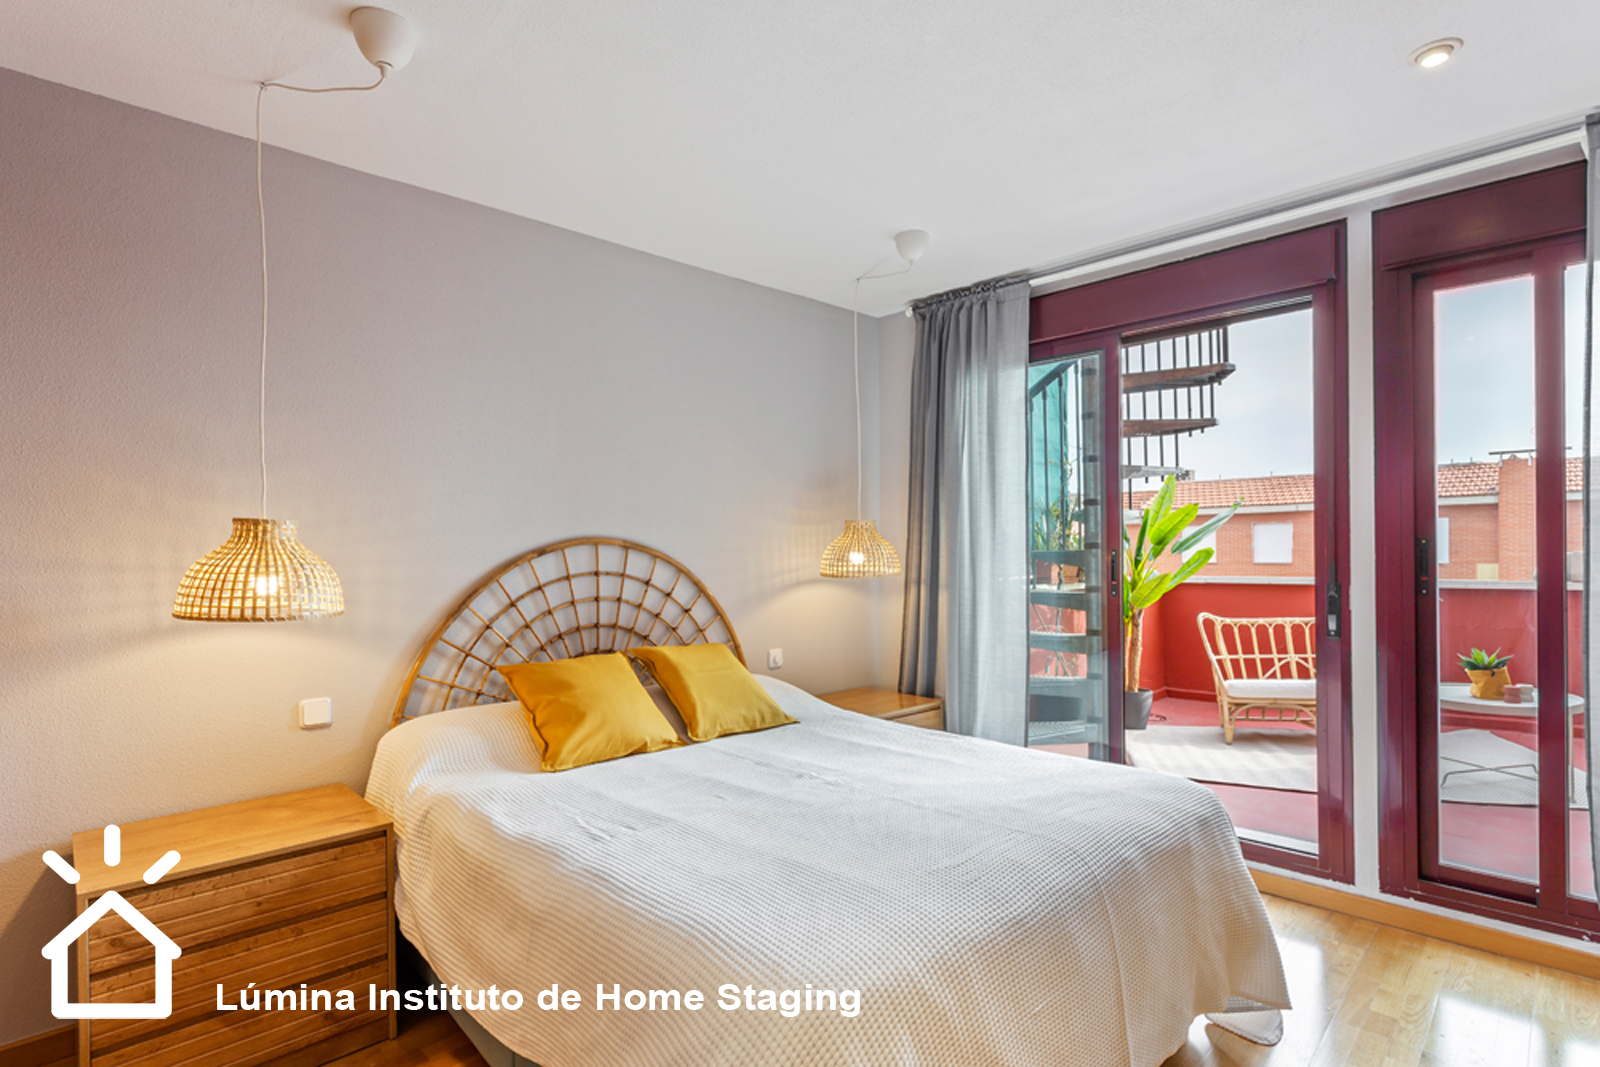 LúminaHome Staging